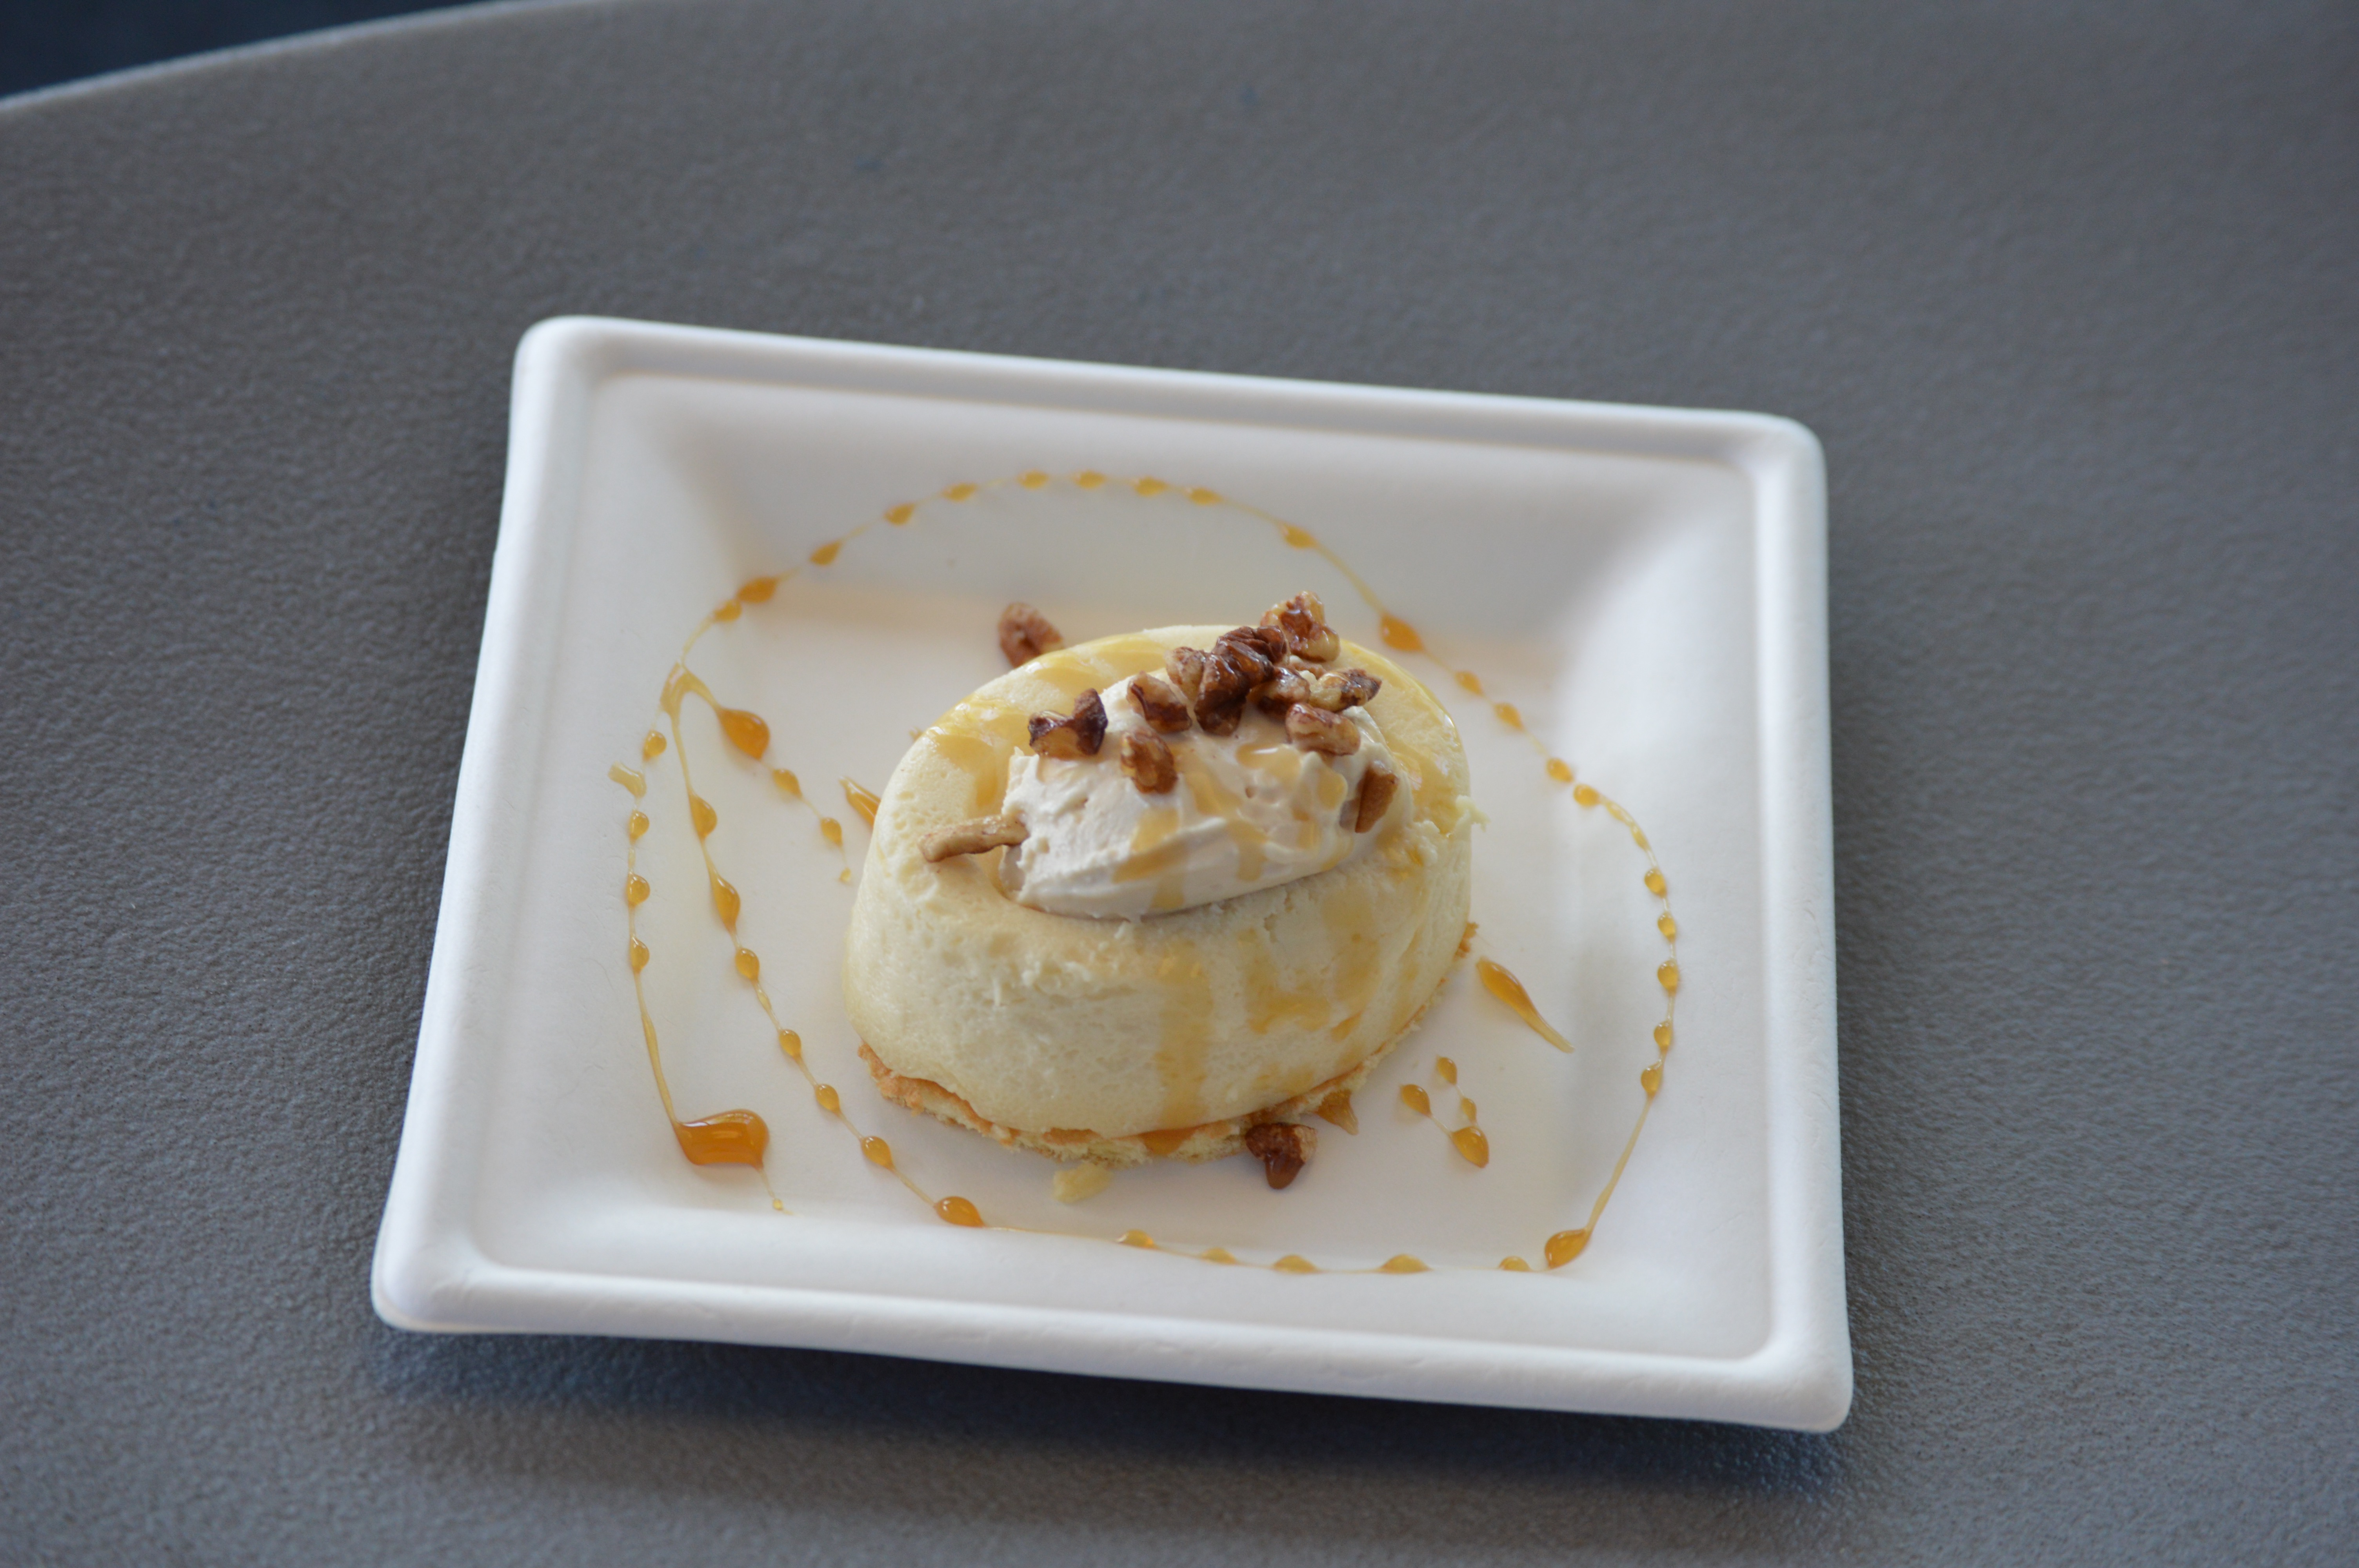 maple bourbon cheesecake from Epcot Food & Wine festival